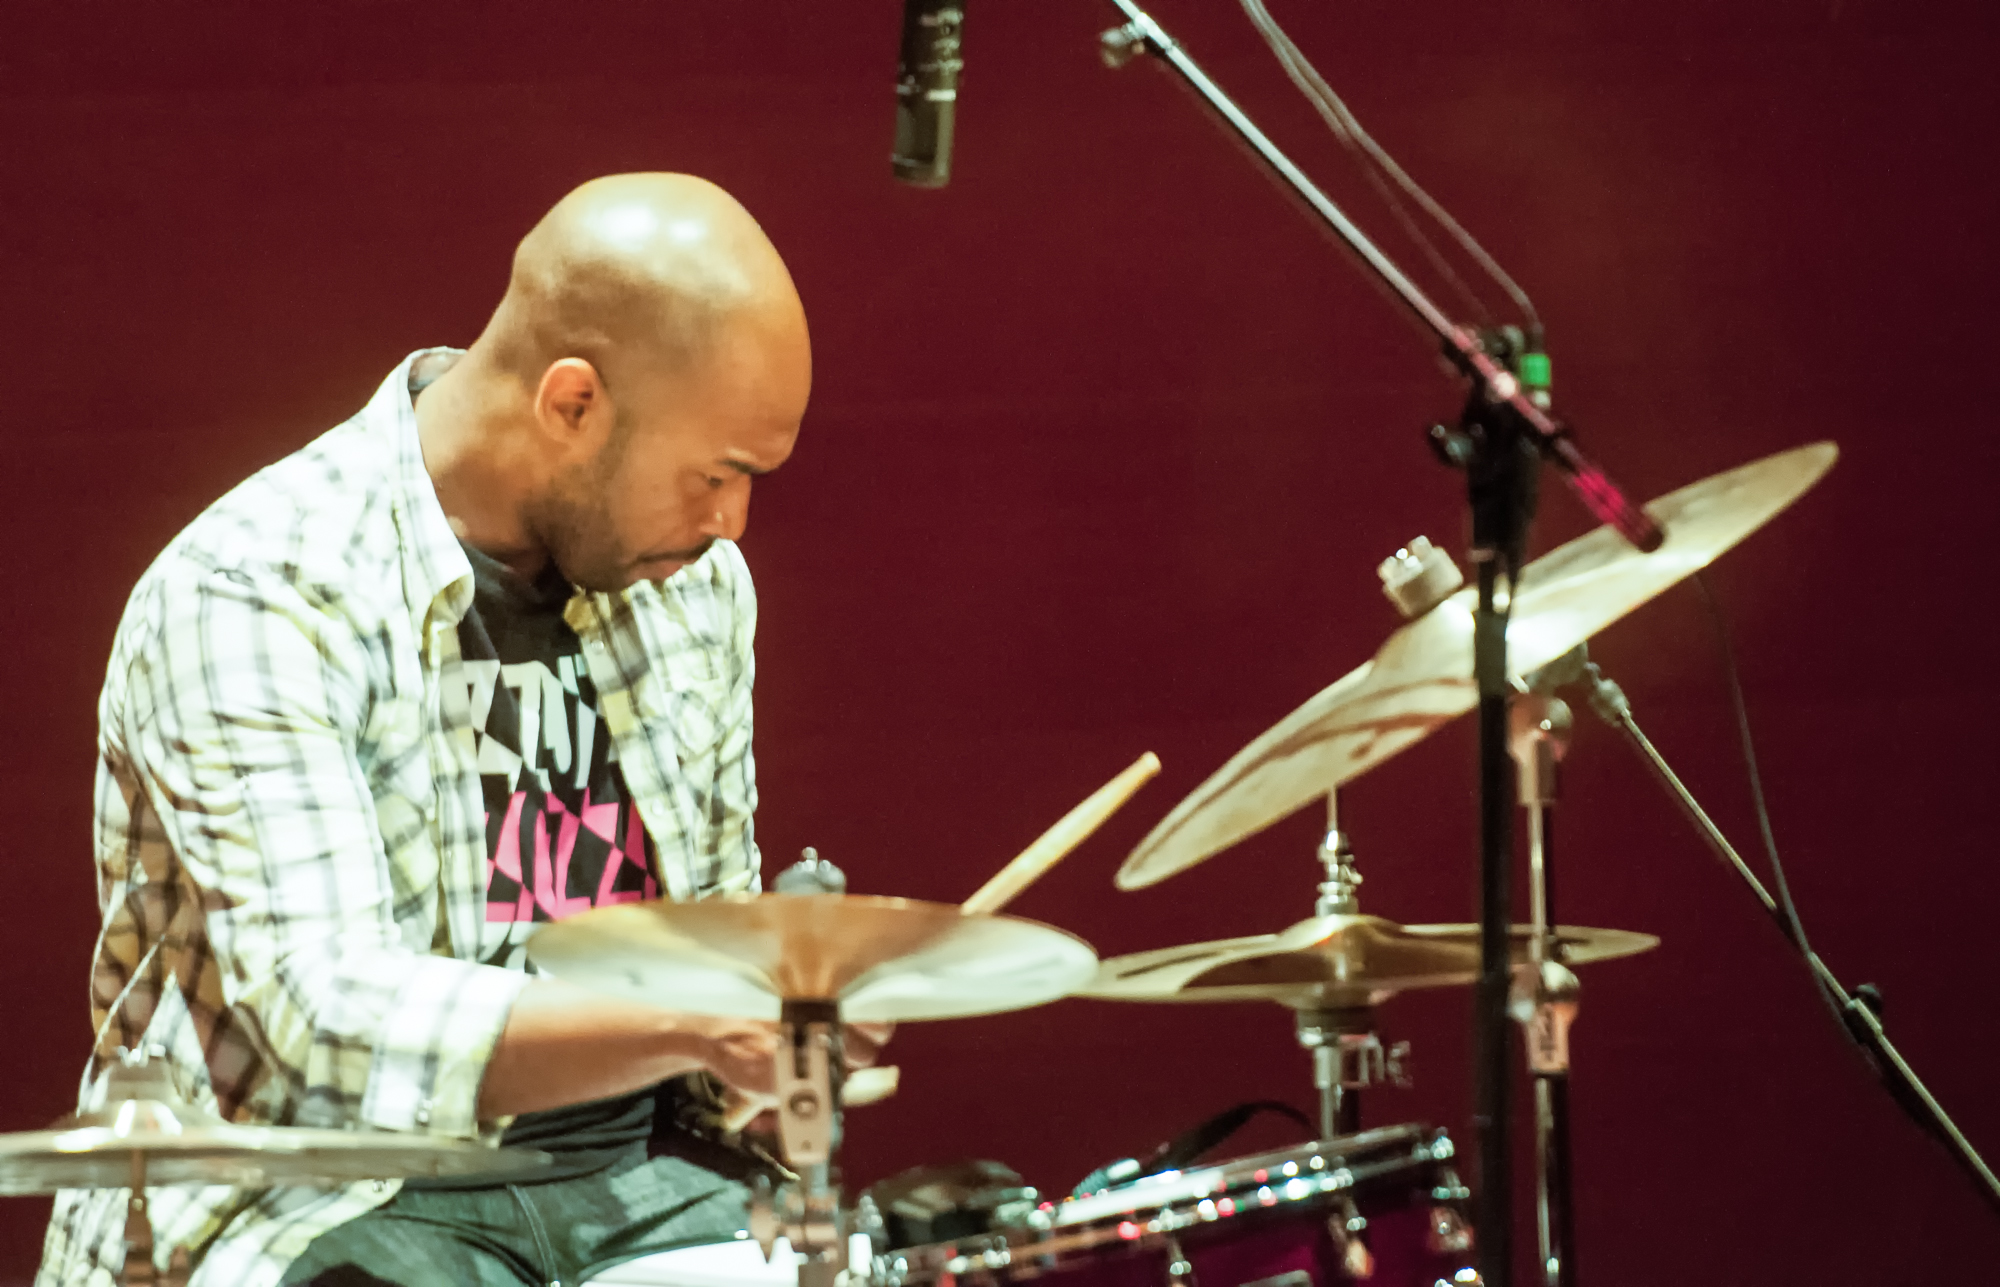 Eric harland with dave holland and prism at the musical instruments museum (mim) in phoenix